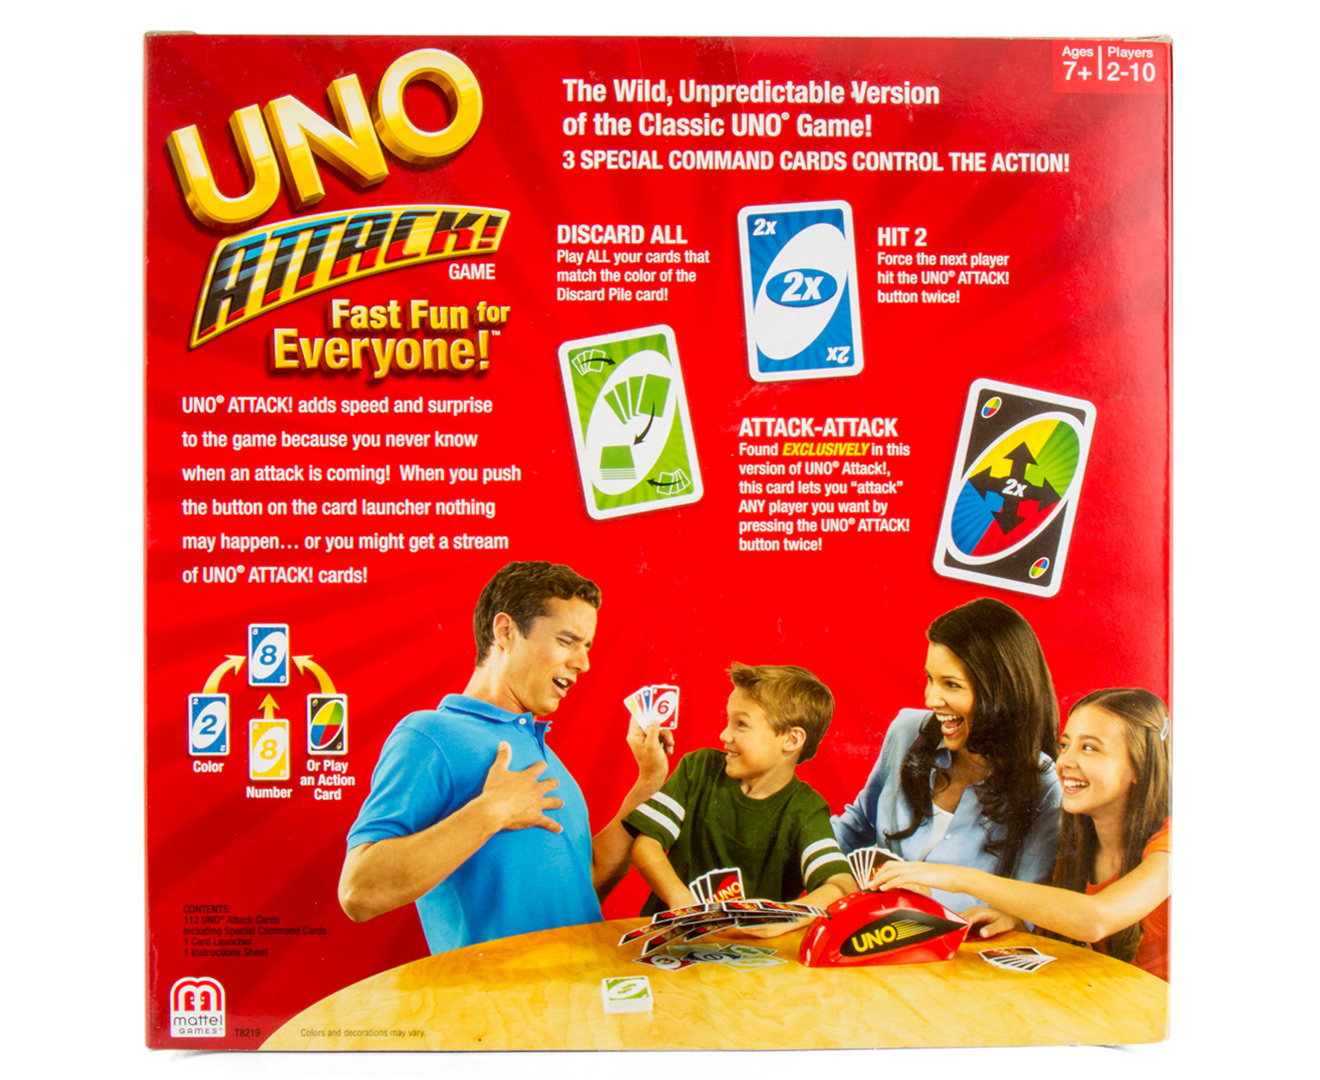 Uno Instructions Mattel - WordPress.com